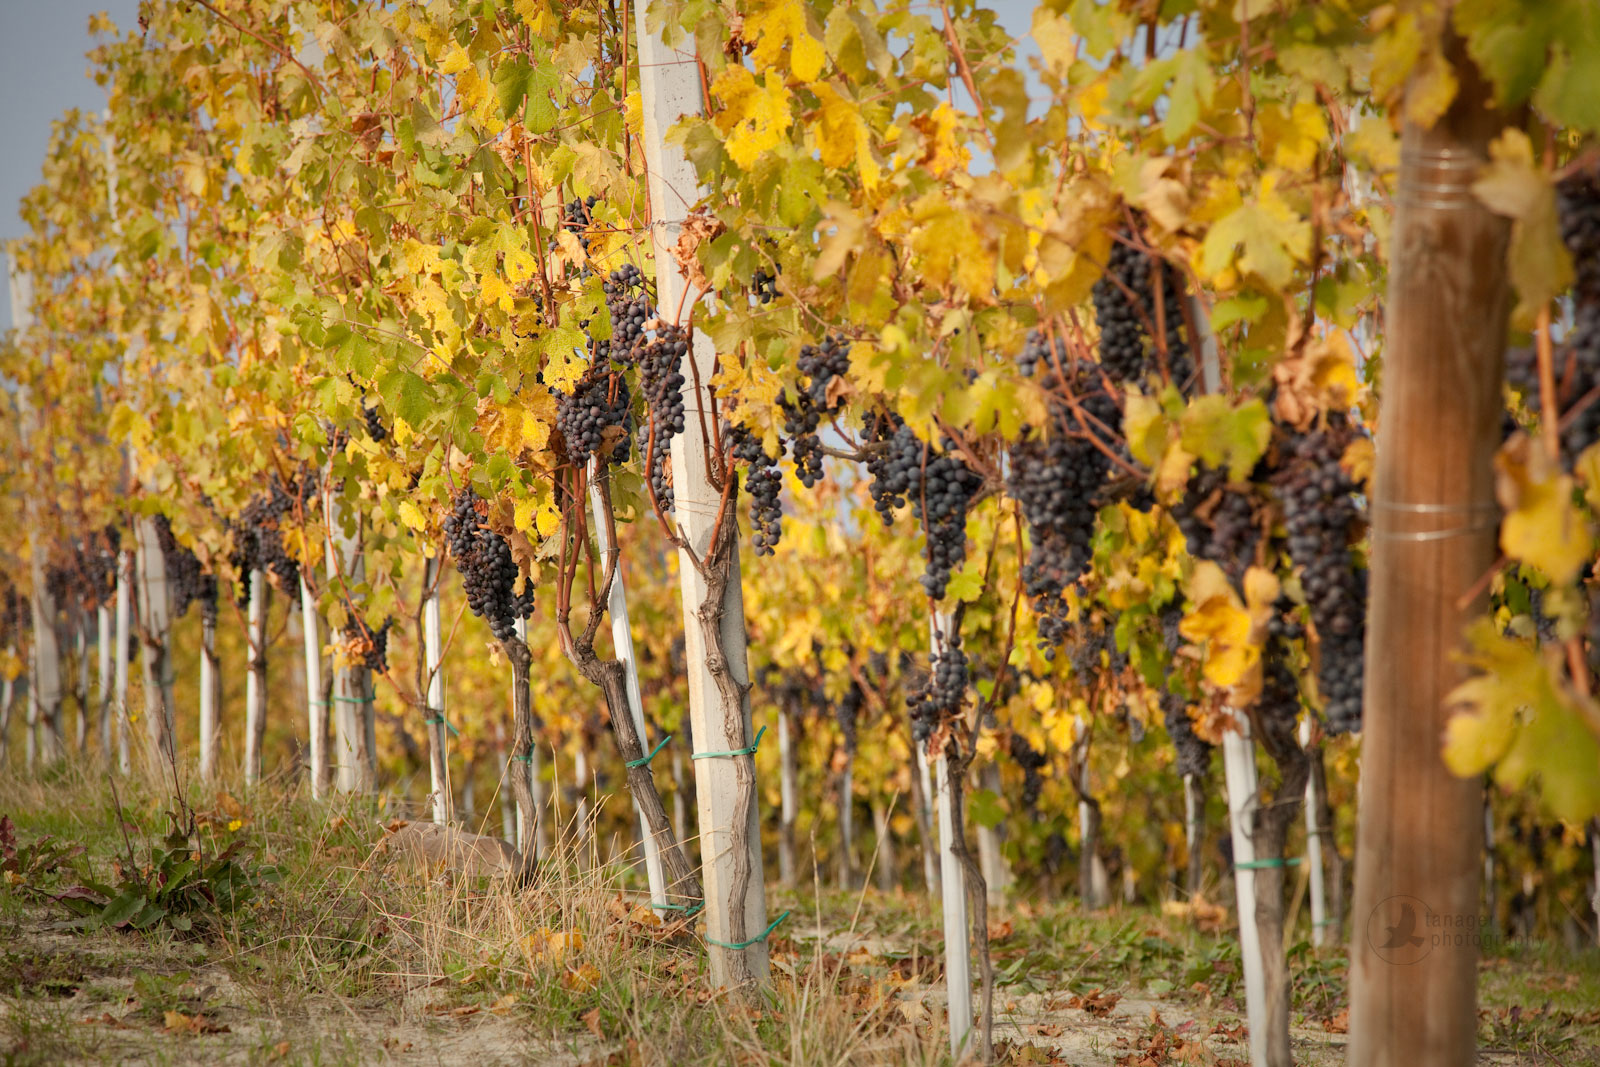 Nebbiolo grapes hanging from vineyards in La Morra, Italy